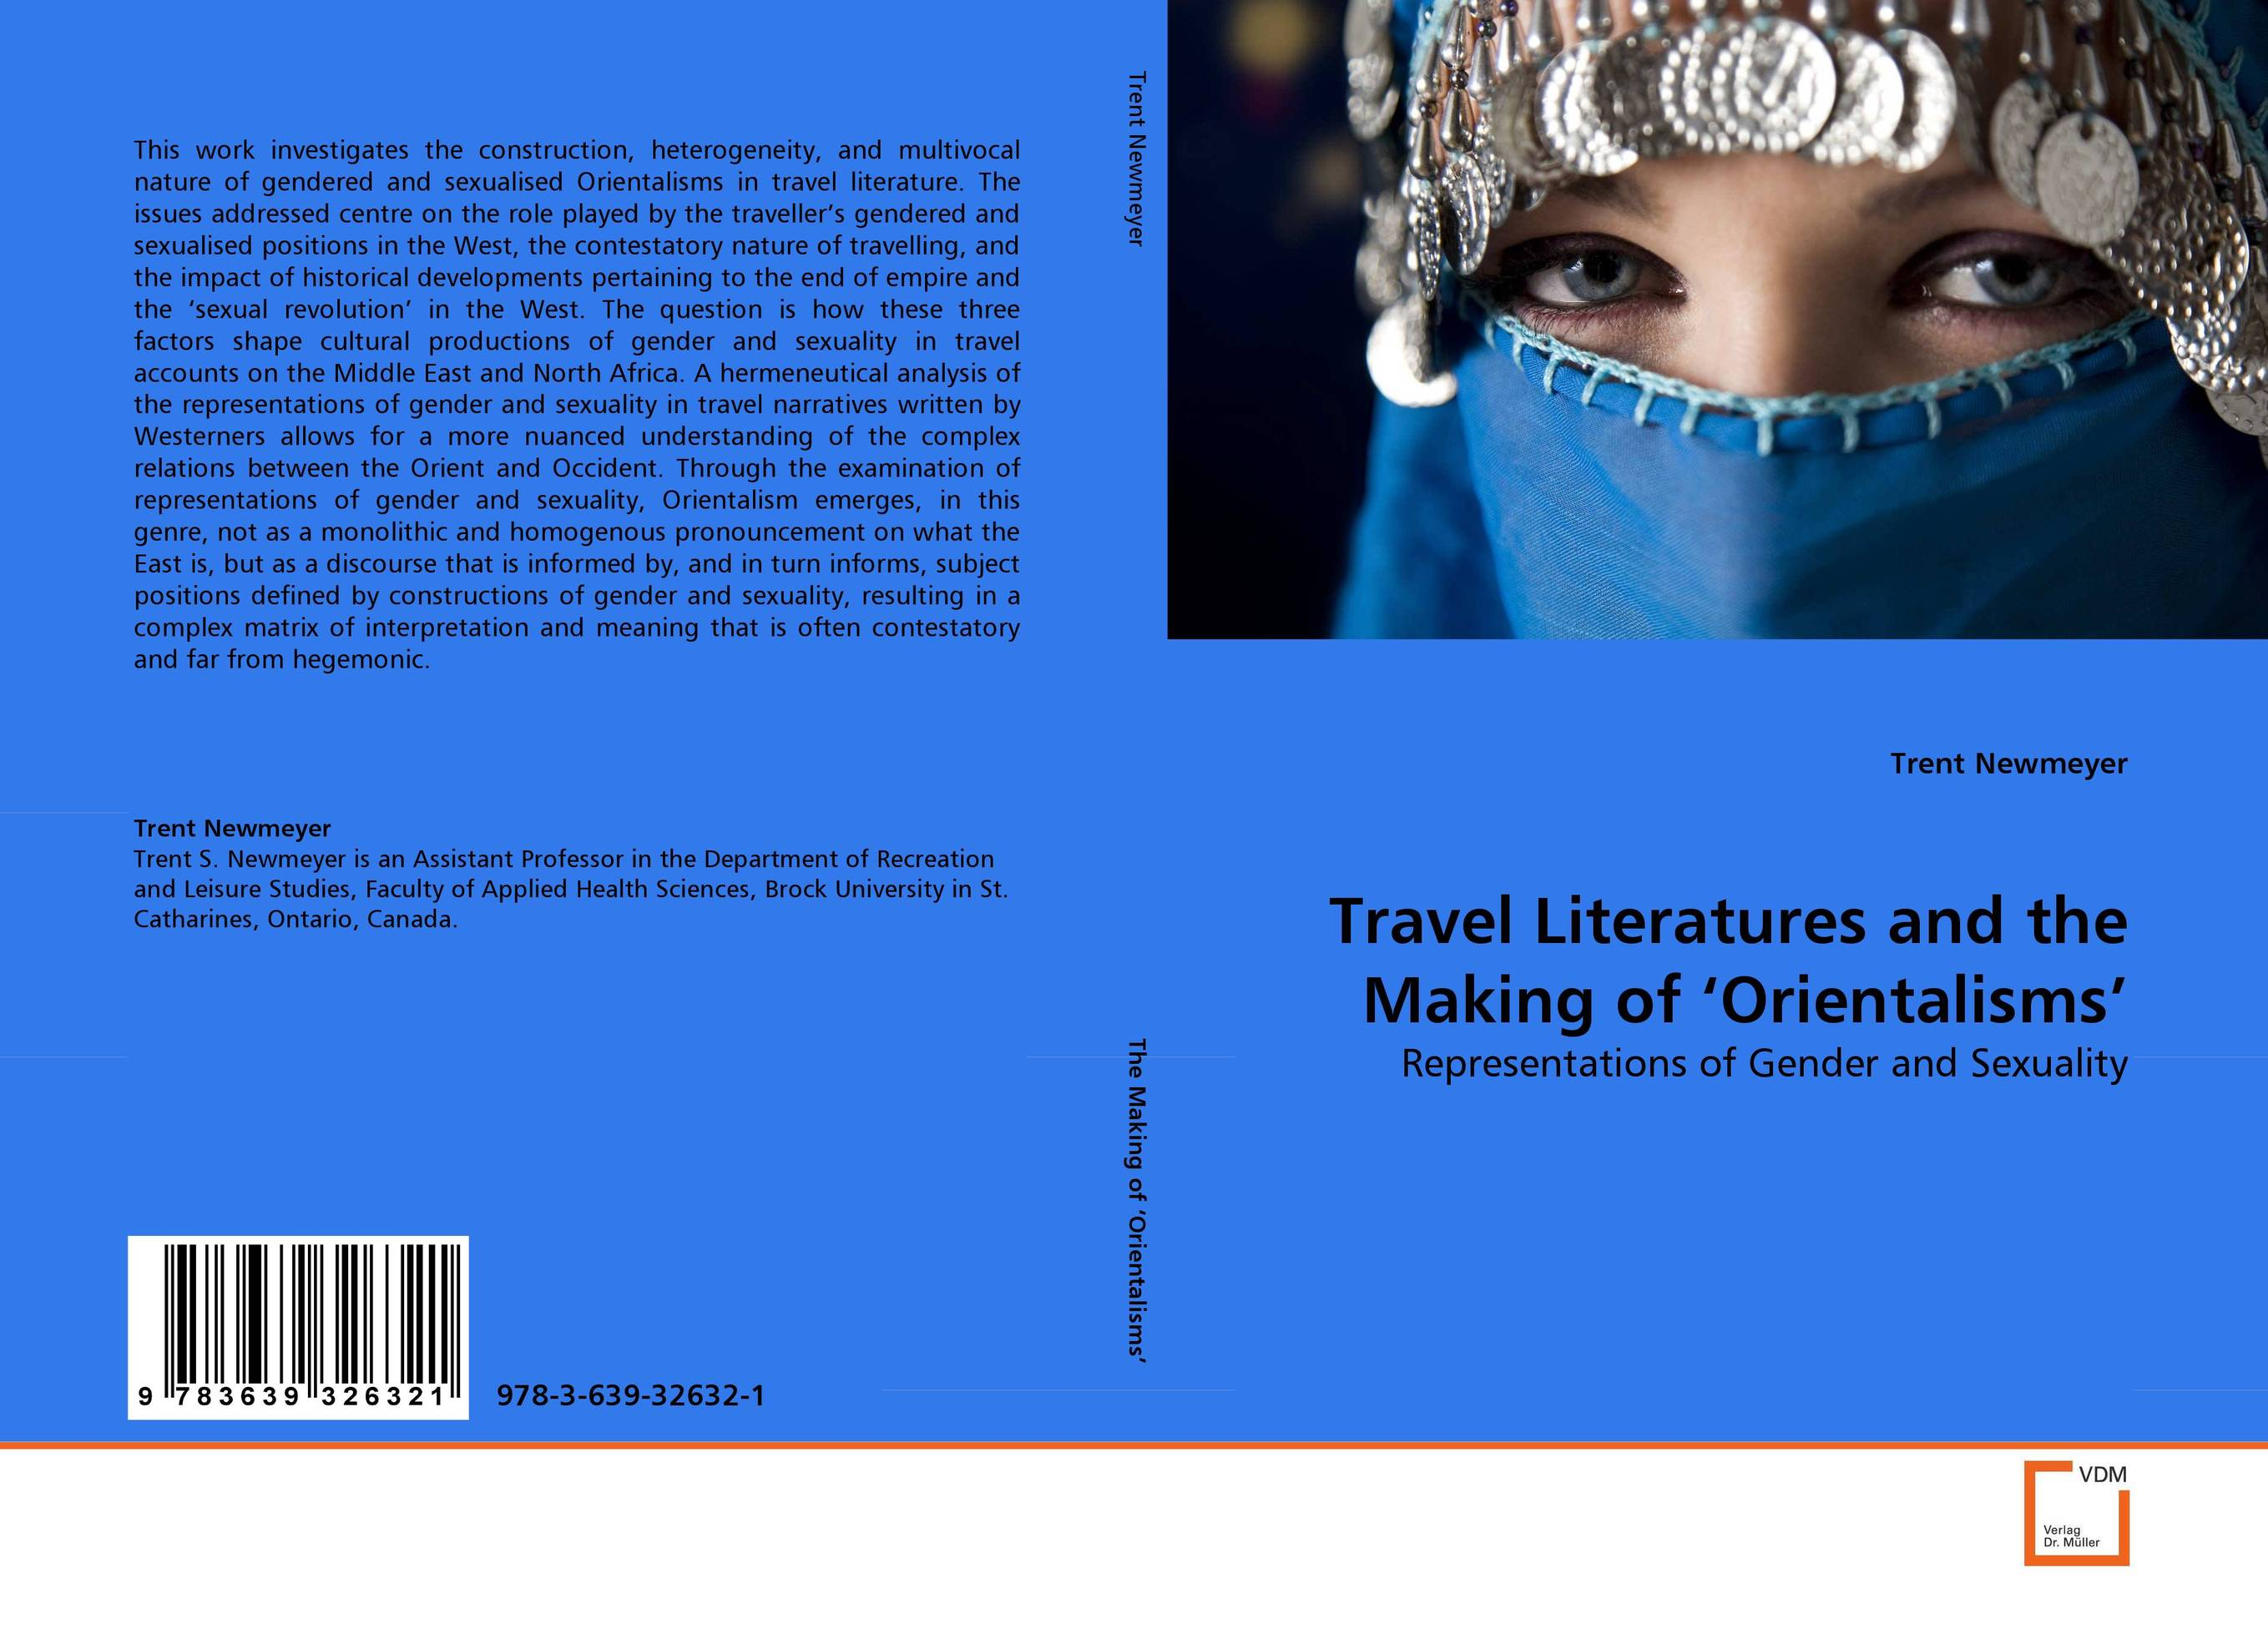 Travel Literatures and the Making of 'Orientalisms'' спрей macadamia healing oil spray объем 60 мл